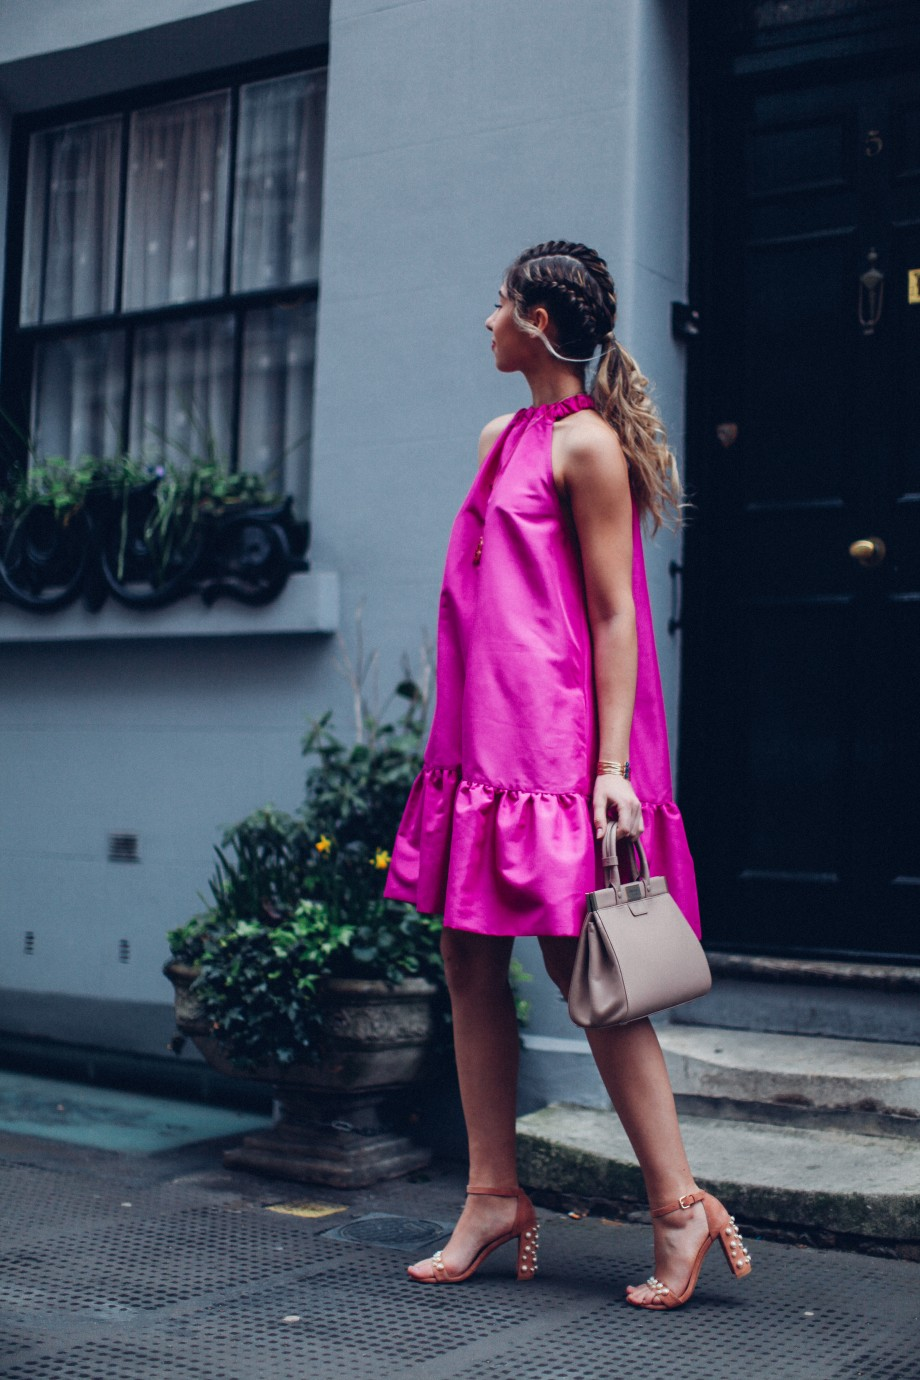 london fashion week streetstyle pink dress, russell and bromley shoes, aspinal bag